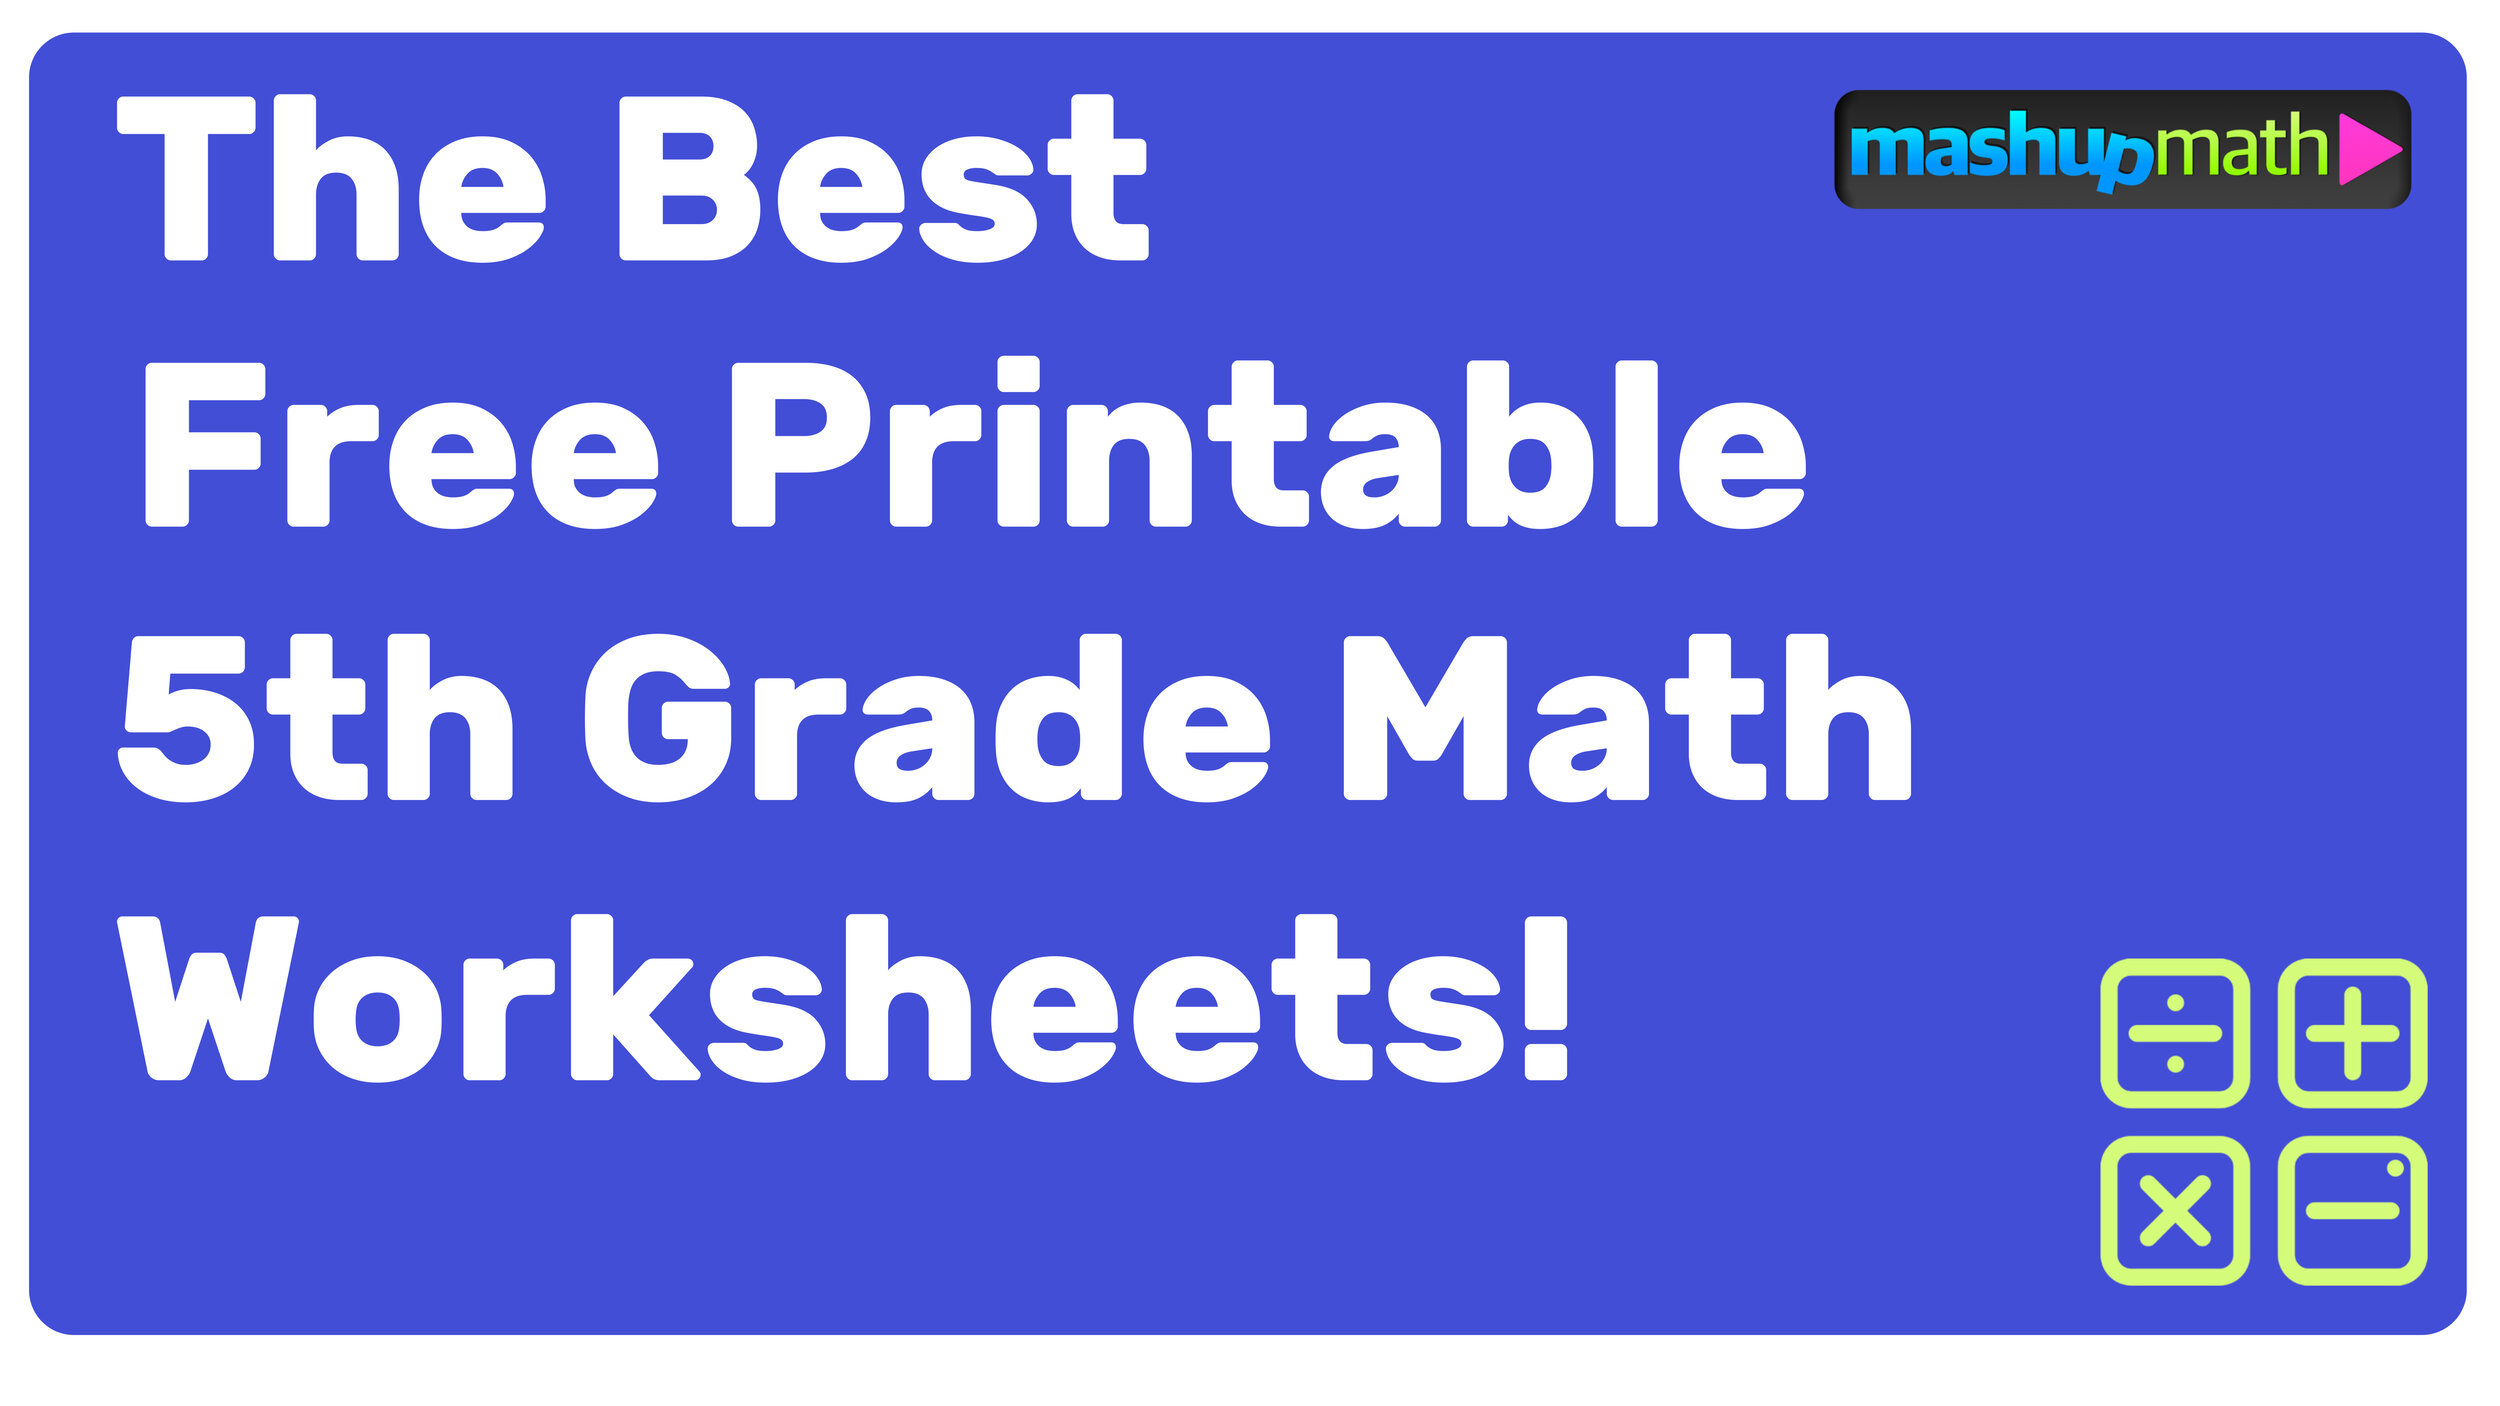 Free Printable 5th Grade Math Worksheets (with Answers!) — Mashup Math [ 844 x 1500 Pixel ]